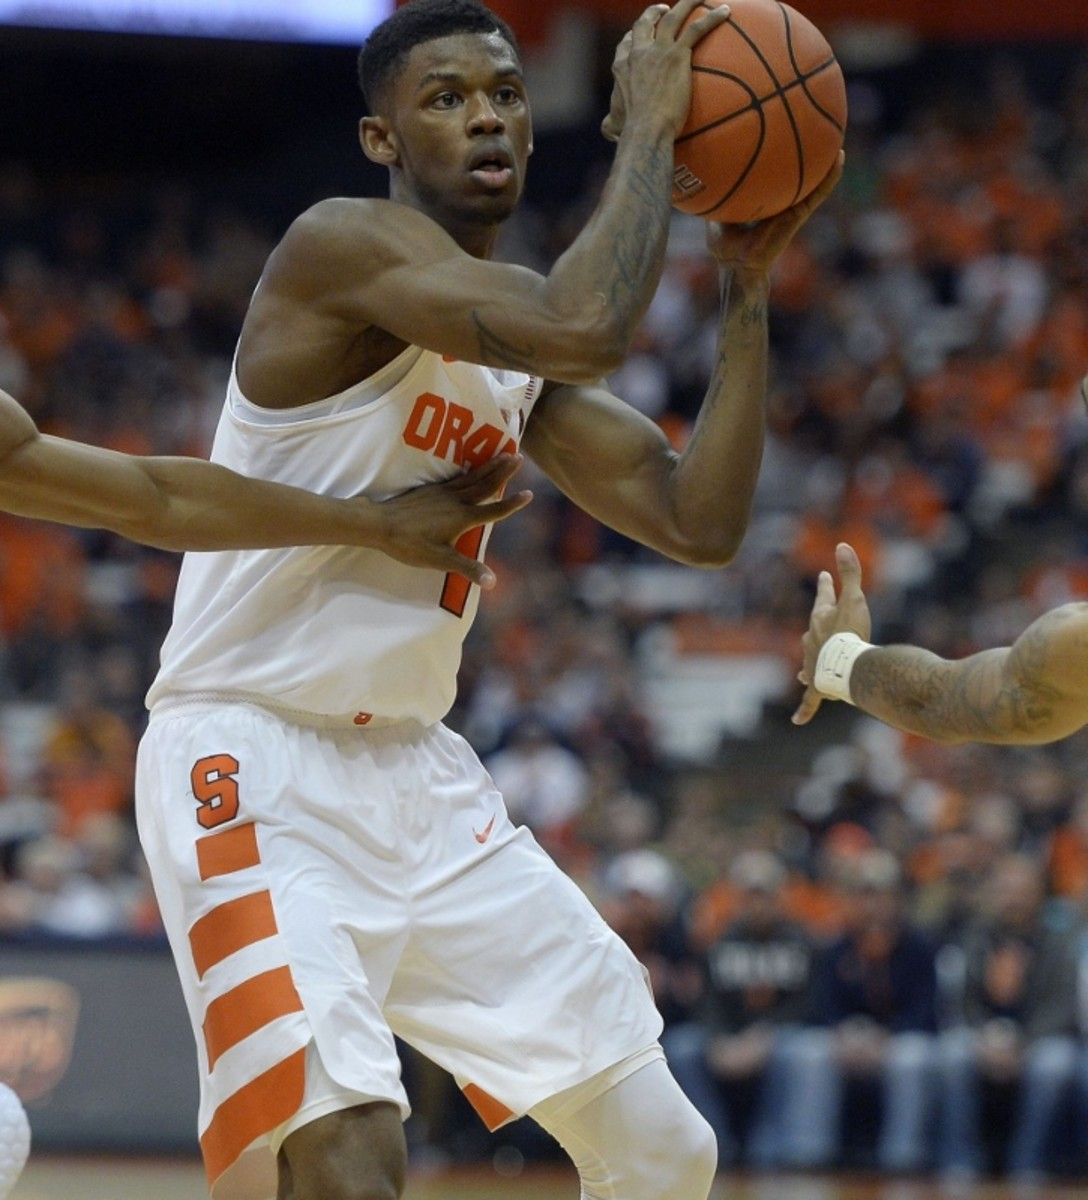 Frank Howard should have slightly less stressful offensive possessions this year.